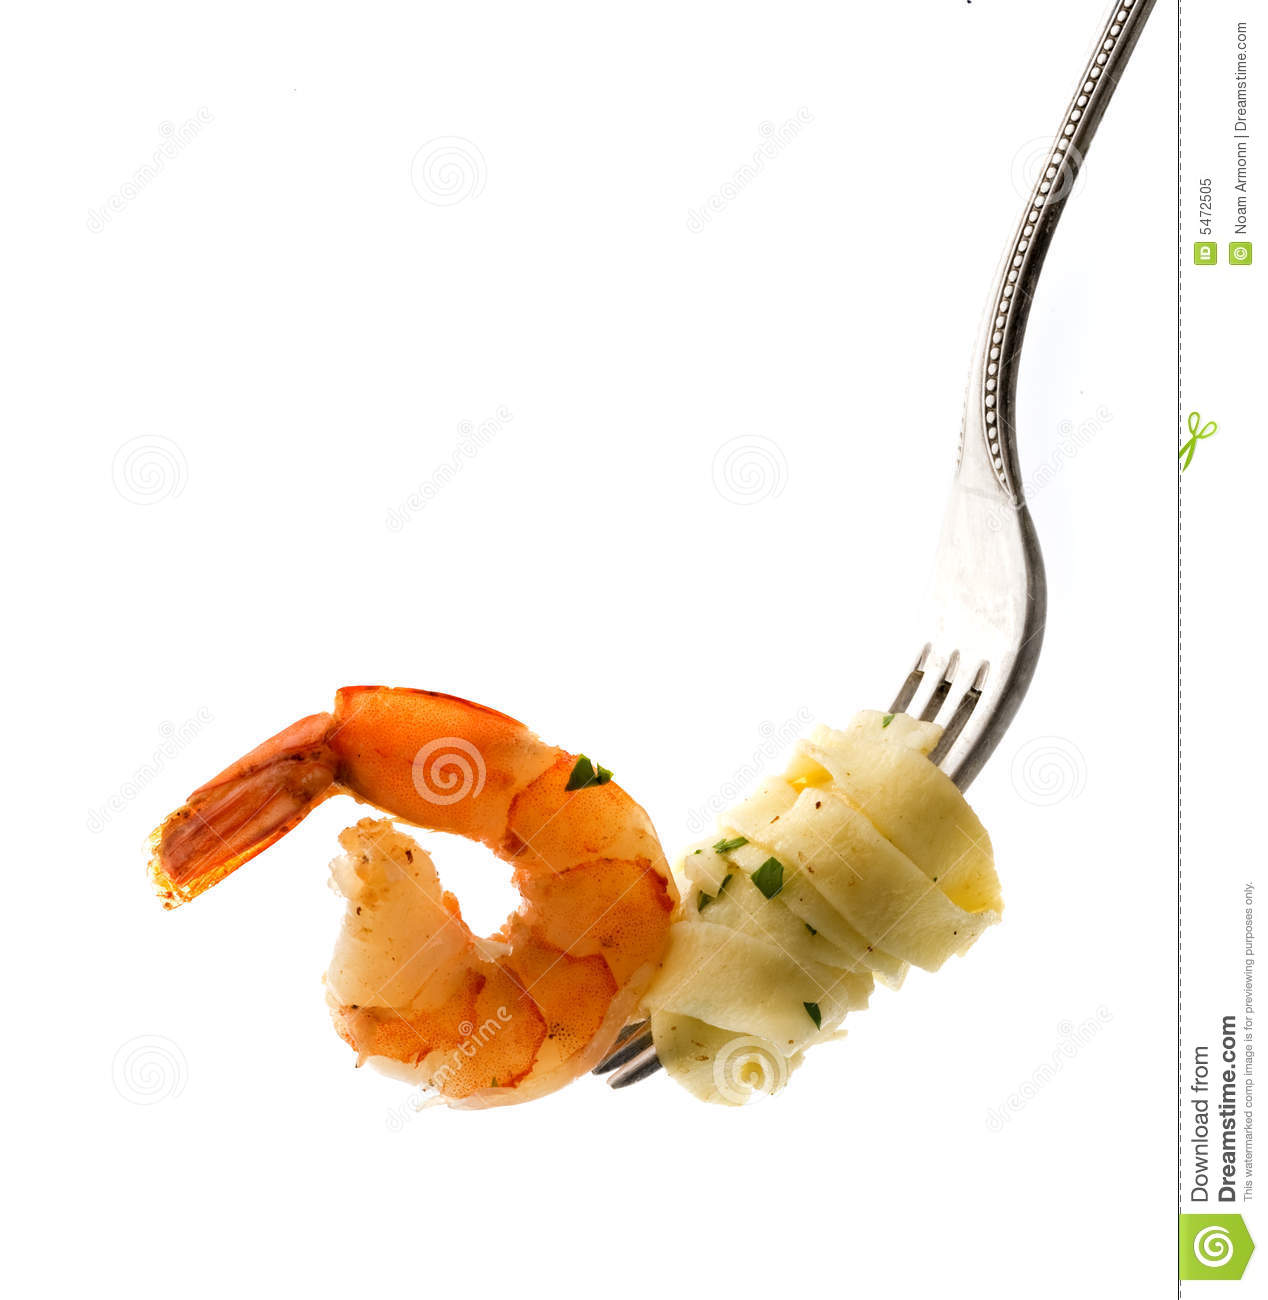 Fork with pasta and shrimp